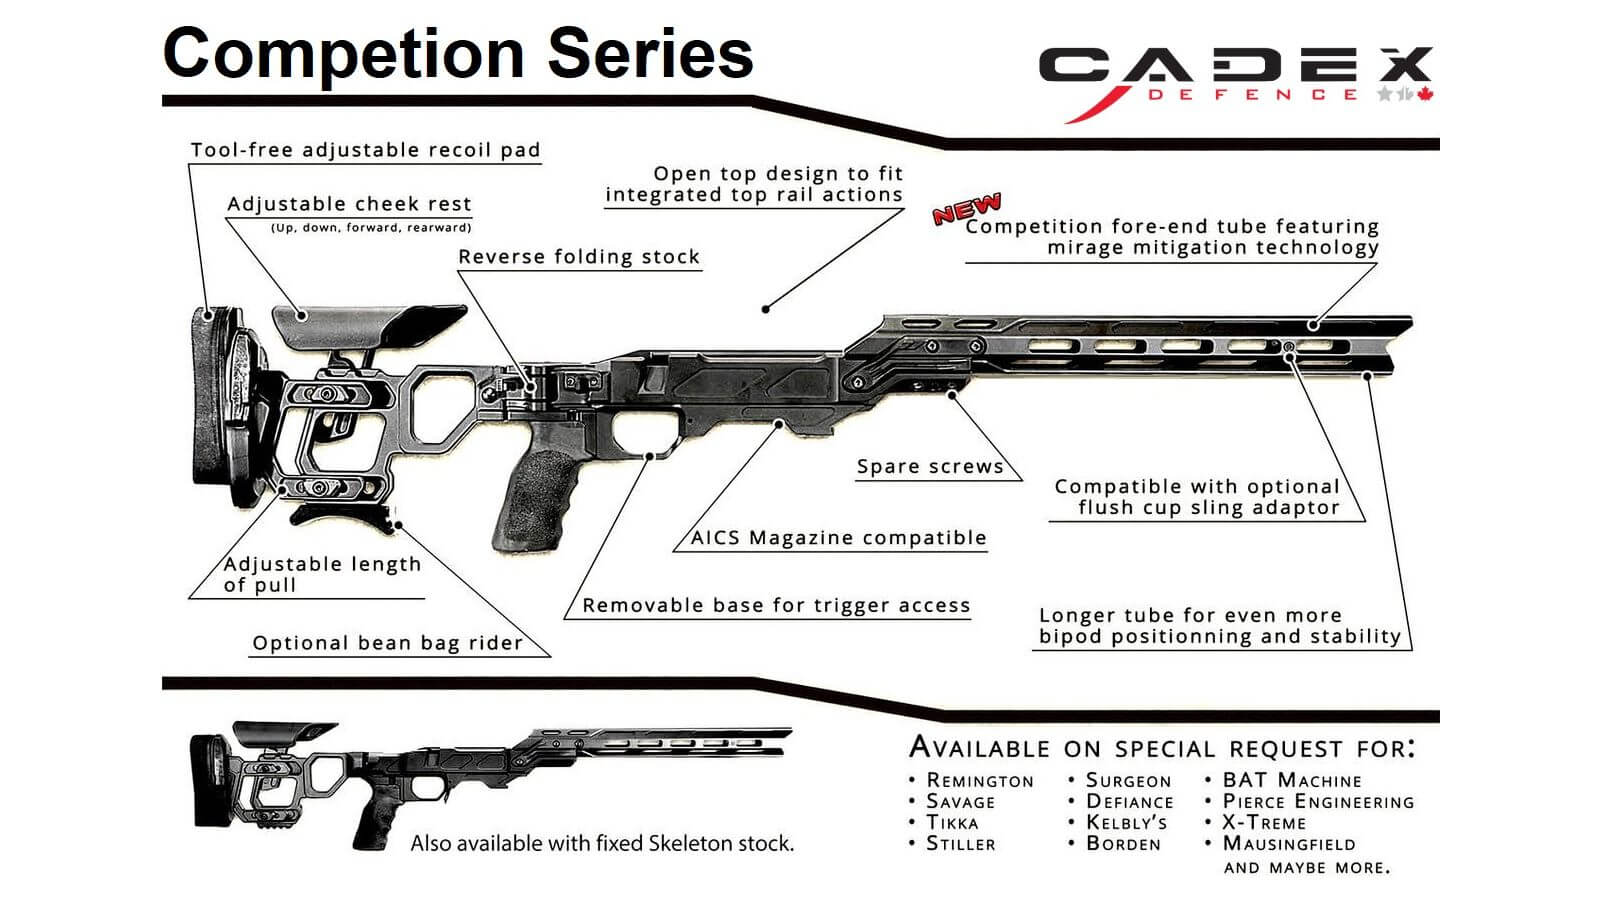 Cadex Field Competition Chassis